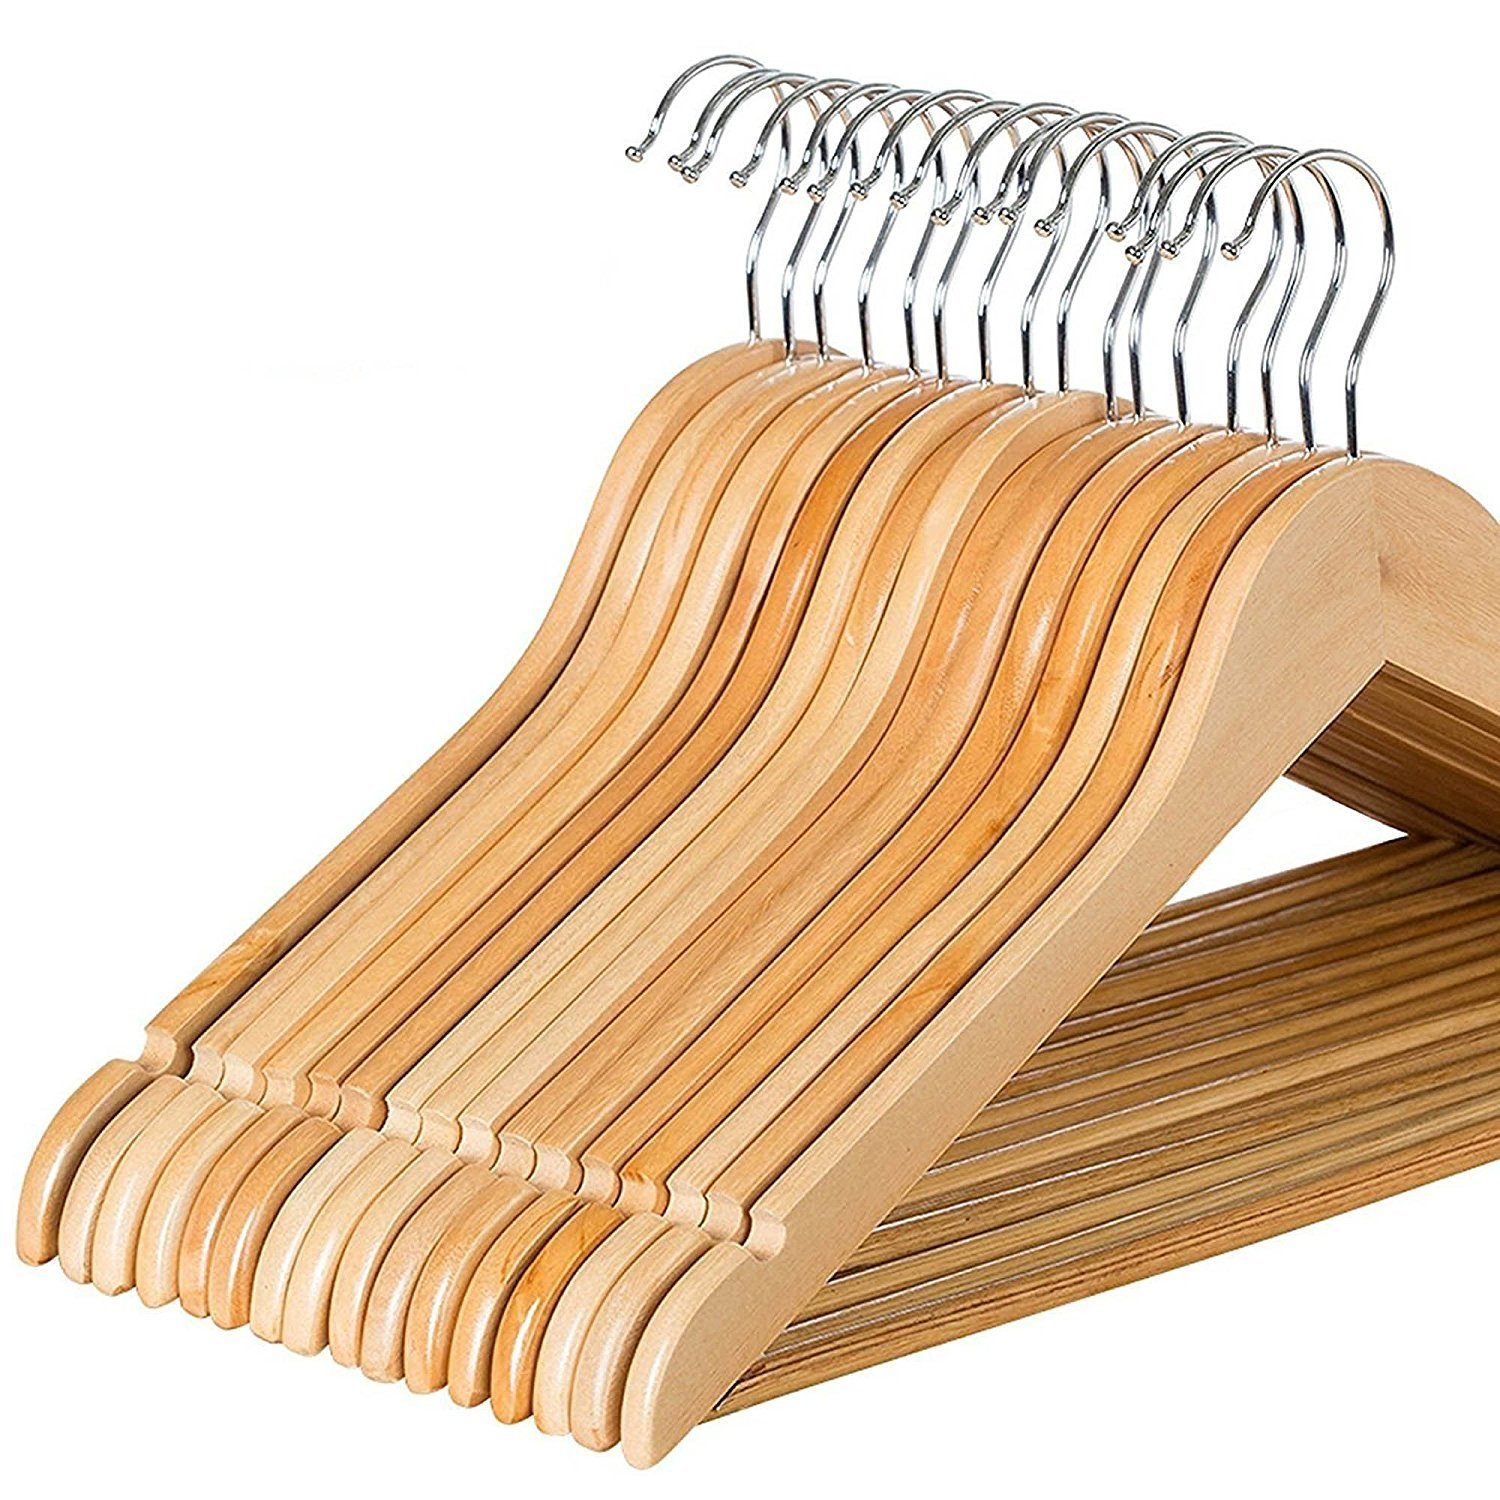 with Non Slip Bar and Precisely Cut Notches Zober Solid Wood Suit Hangers 360 Degree Swivel Chrome Hook Natural Finish Super Sturdy and Durable Wooden Hangers ZO-W101//30 30 Pack